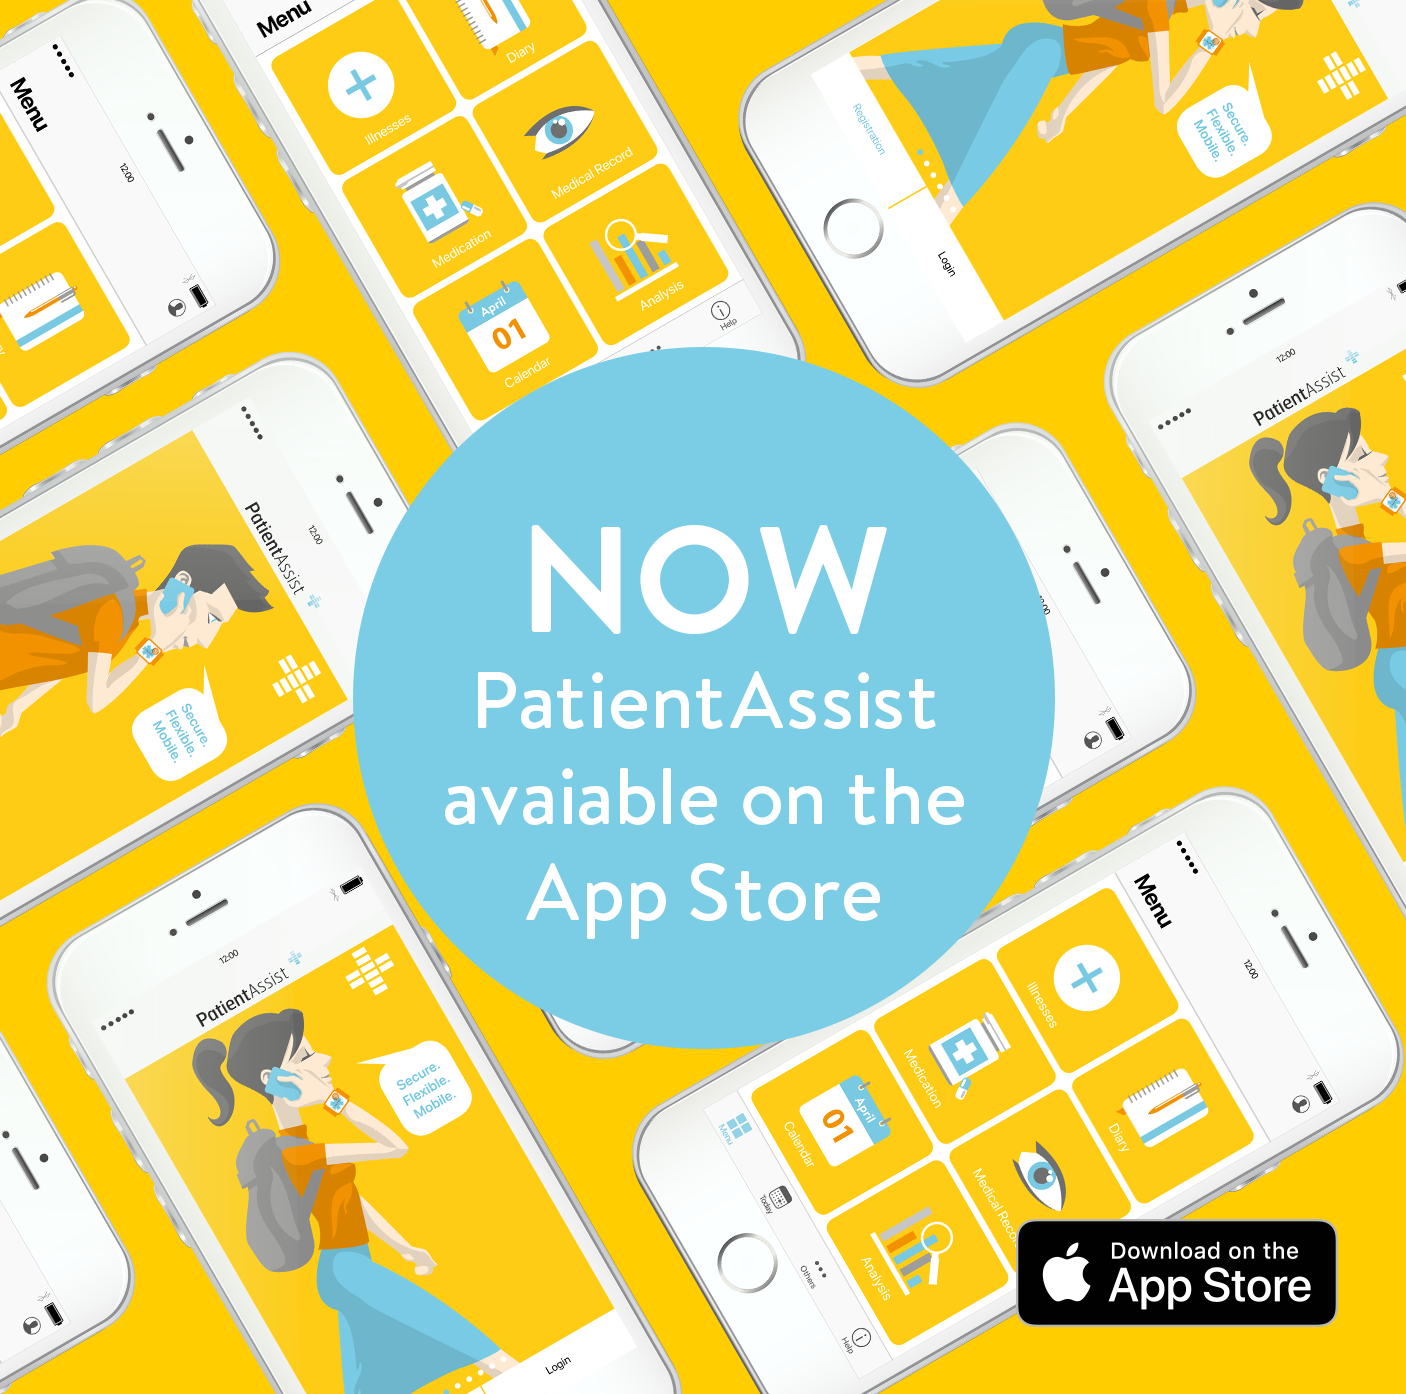 Now PatientAssist avaiable on the App Store